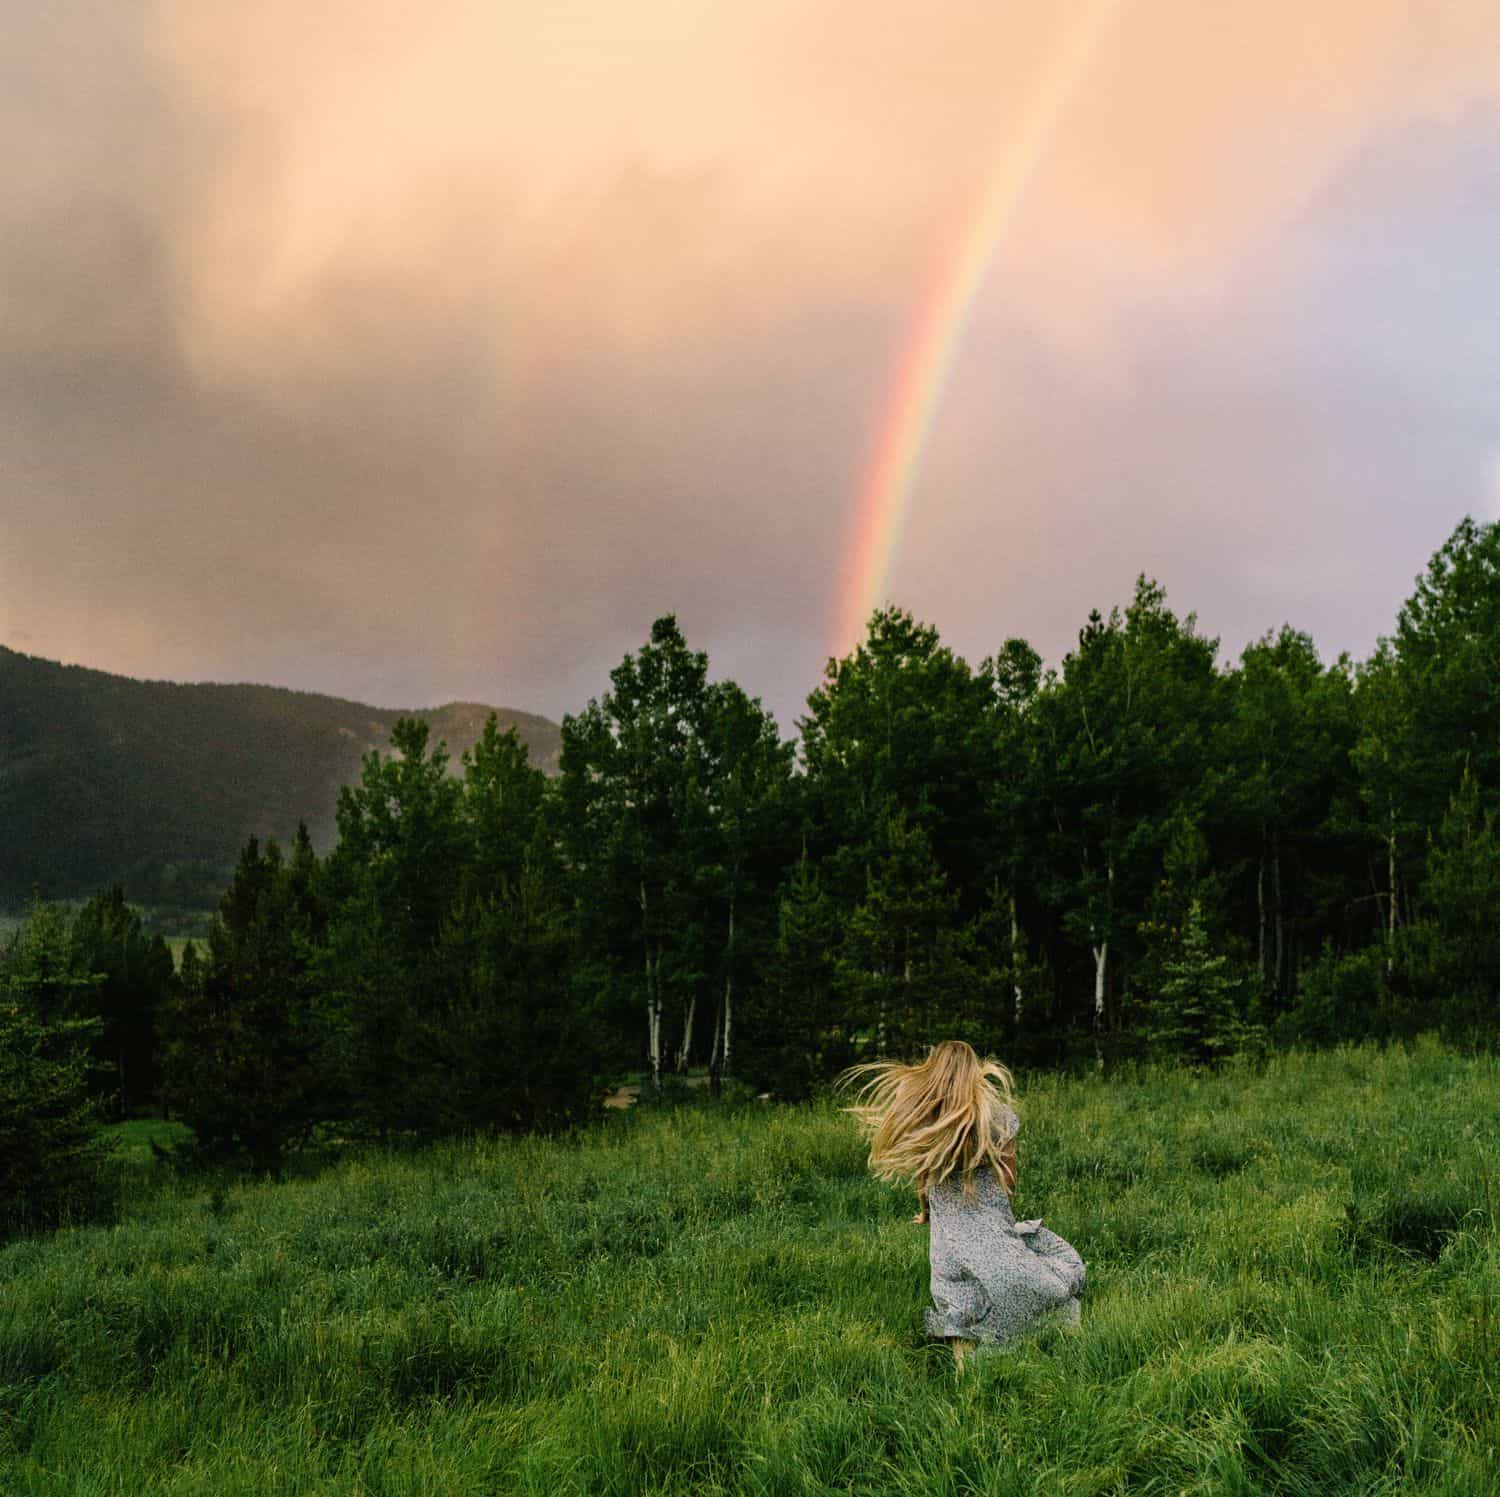 A senior girls runs through a lush green field toward a rainbow in a gloomy sky